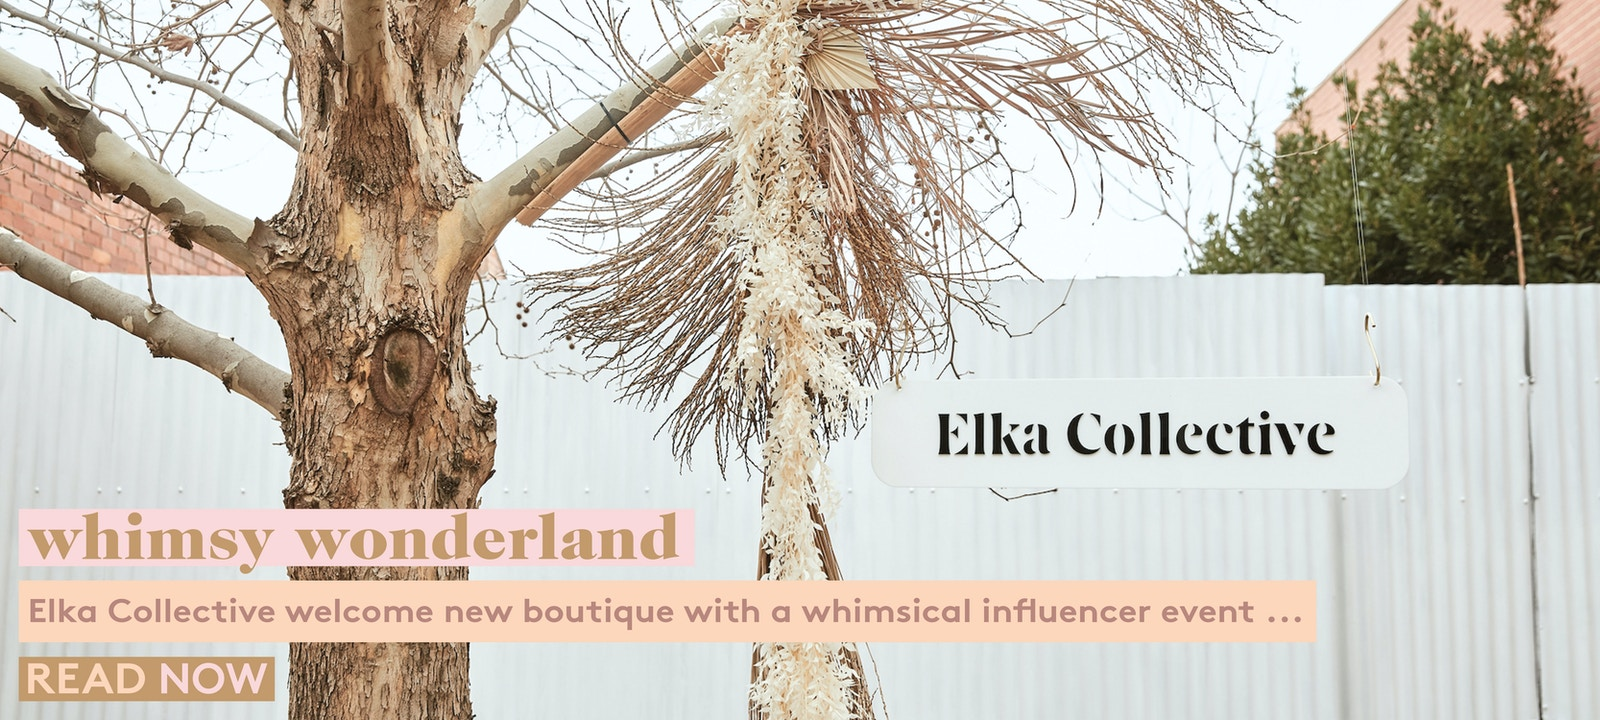 Elka Collective's whimsical influencer event